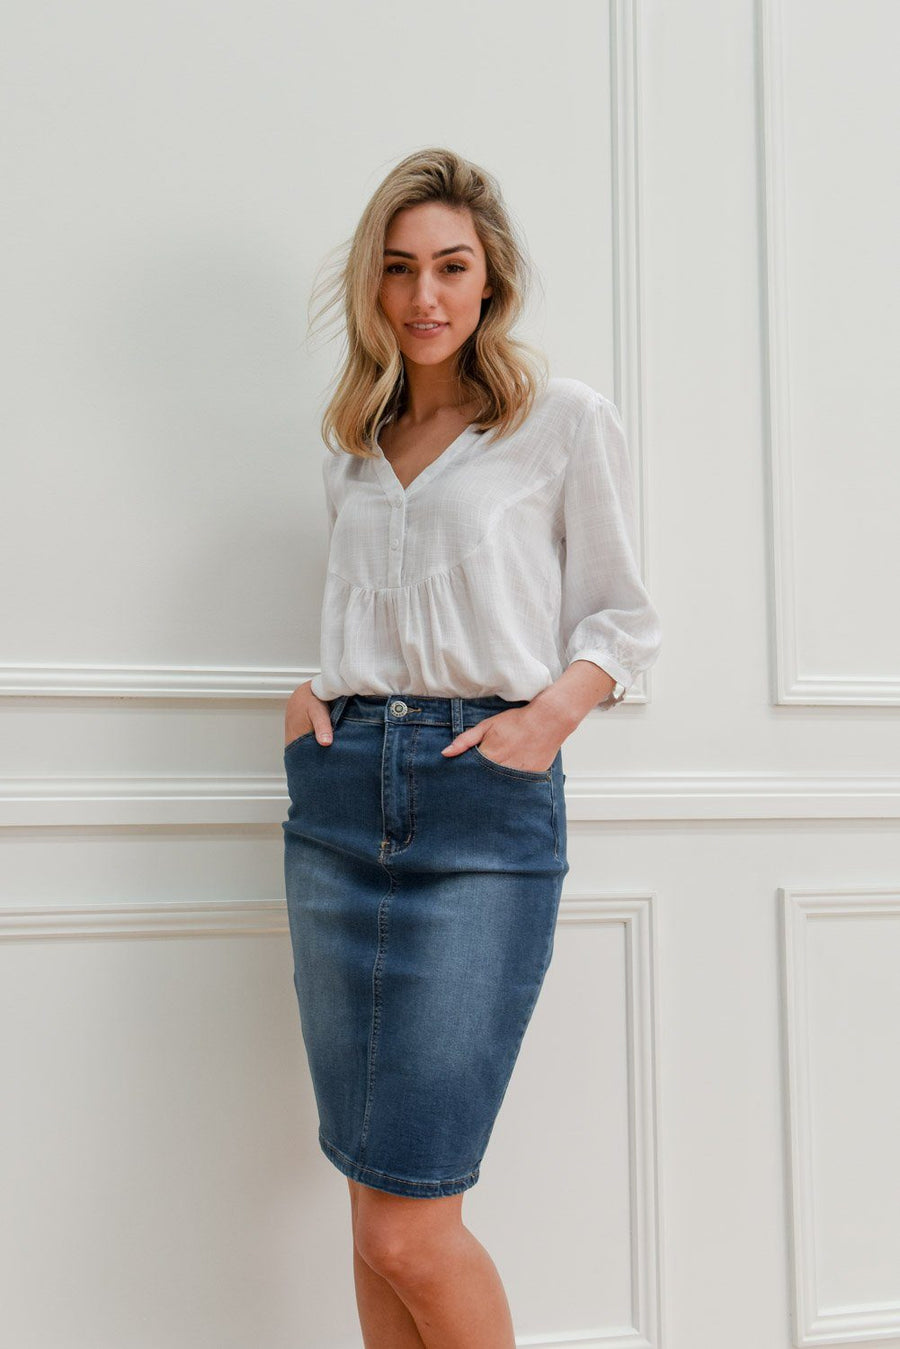 Blaire Skirt | Blue Denimn Skirt Gray Label